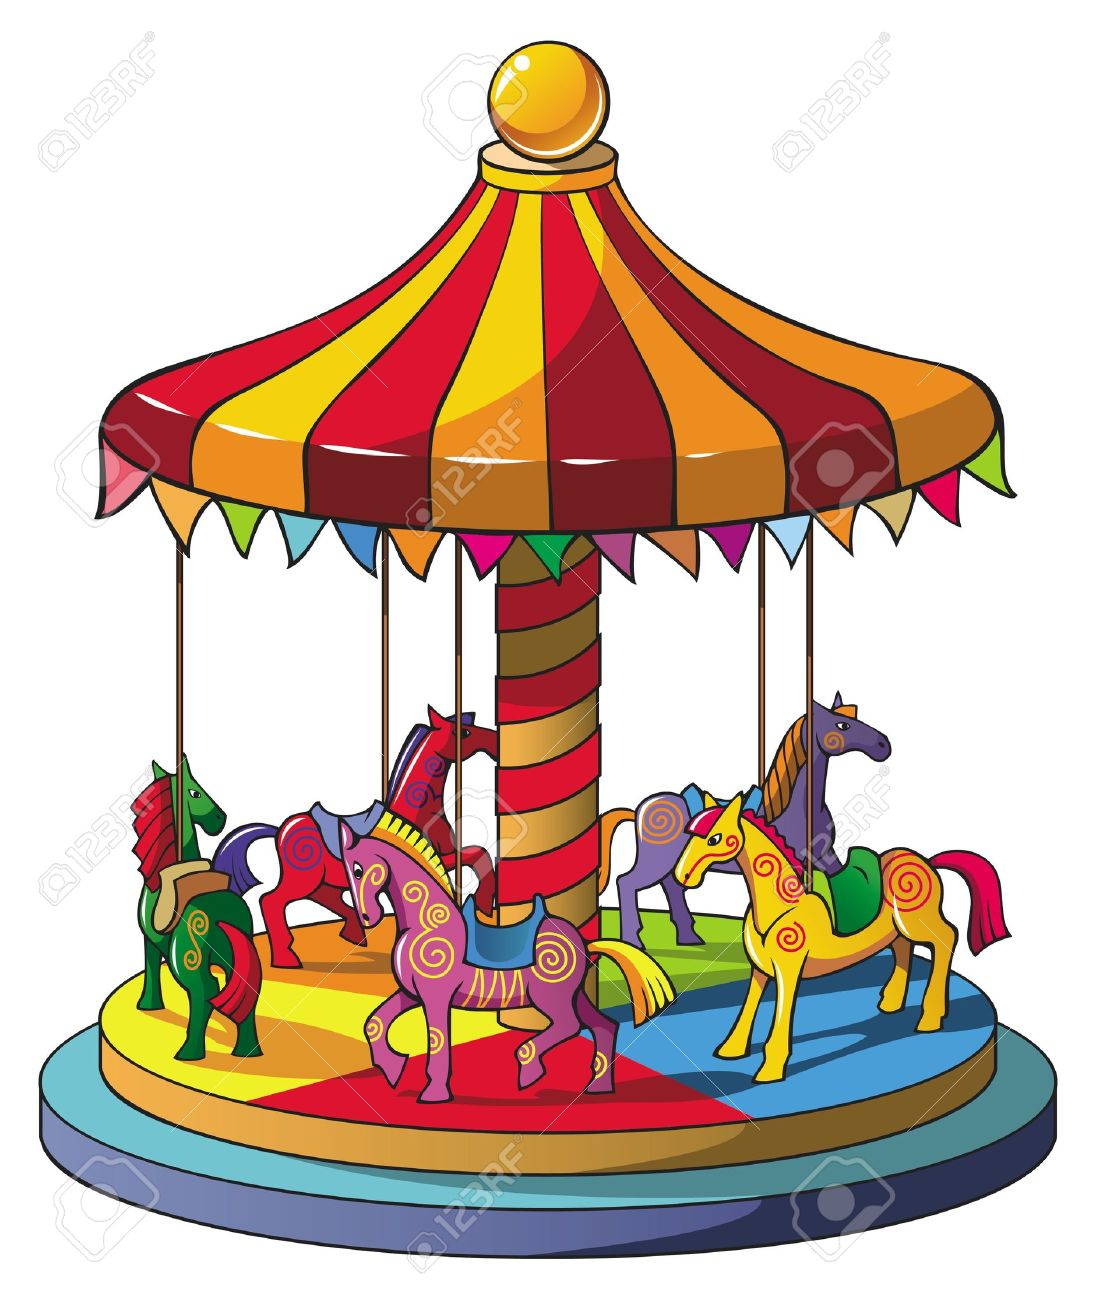 Ride clipart carousel 1 50 get Carousel Collection